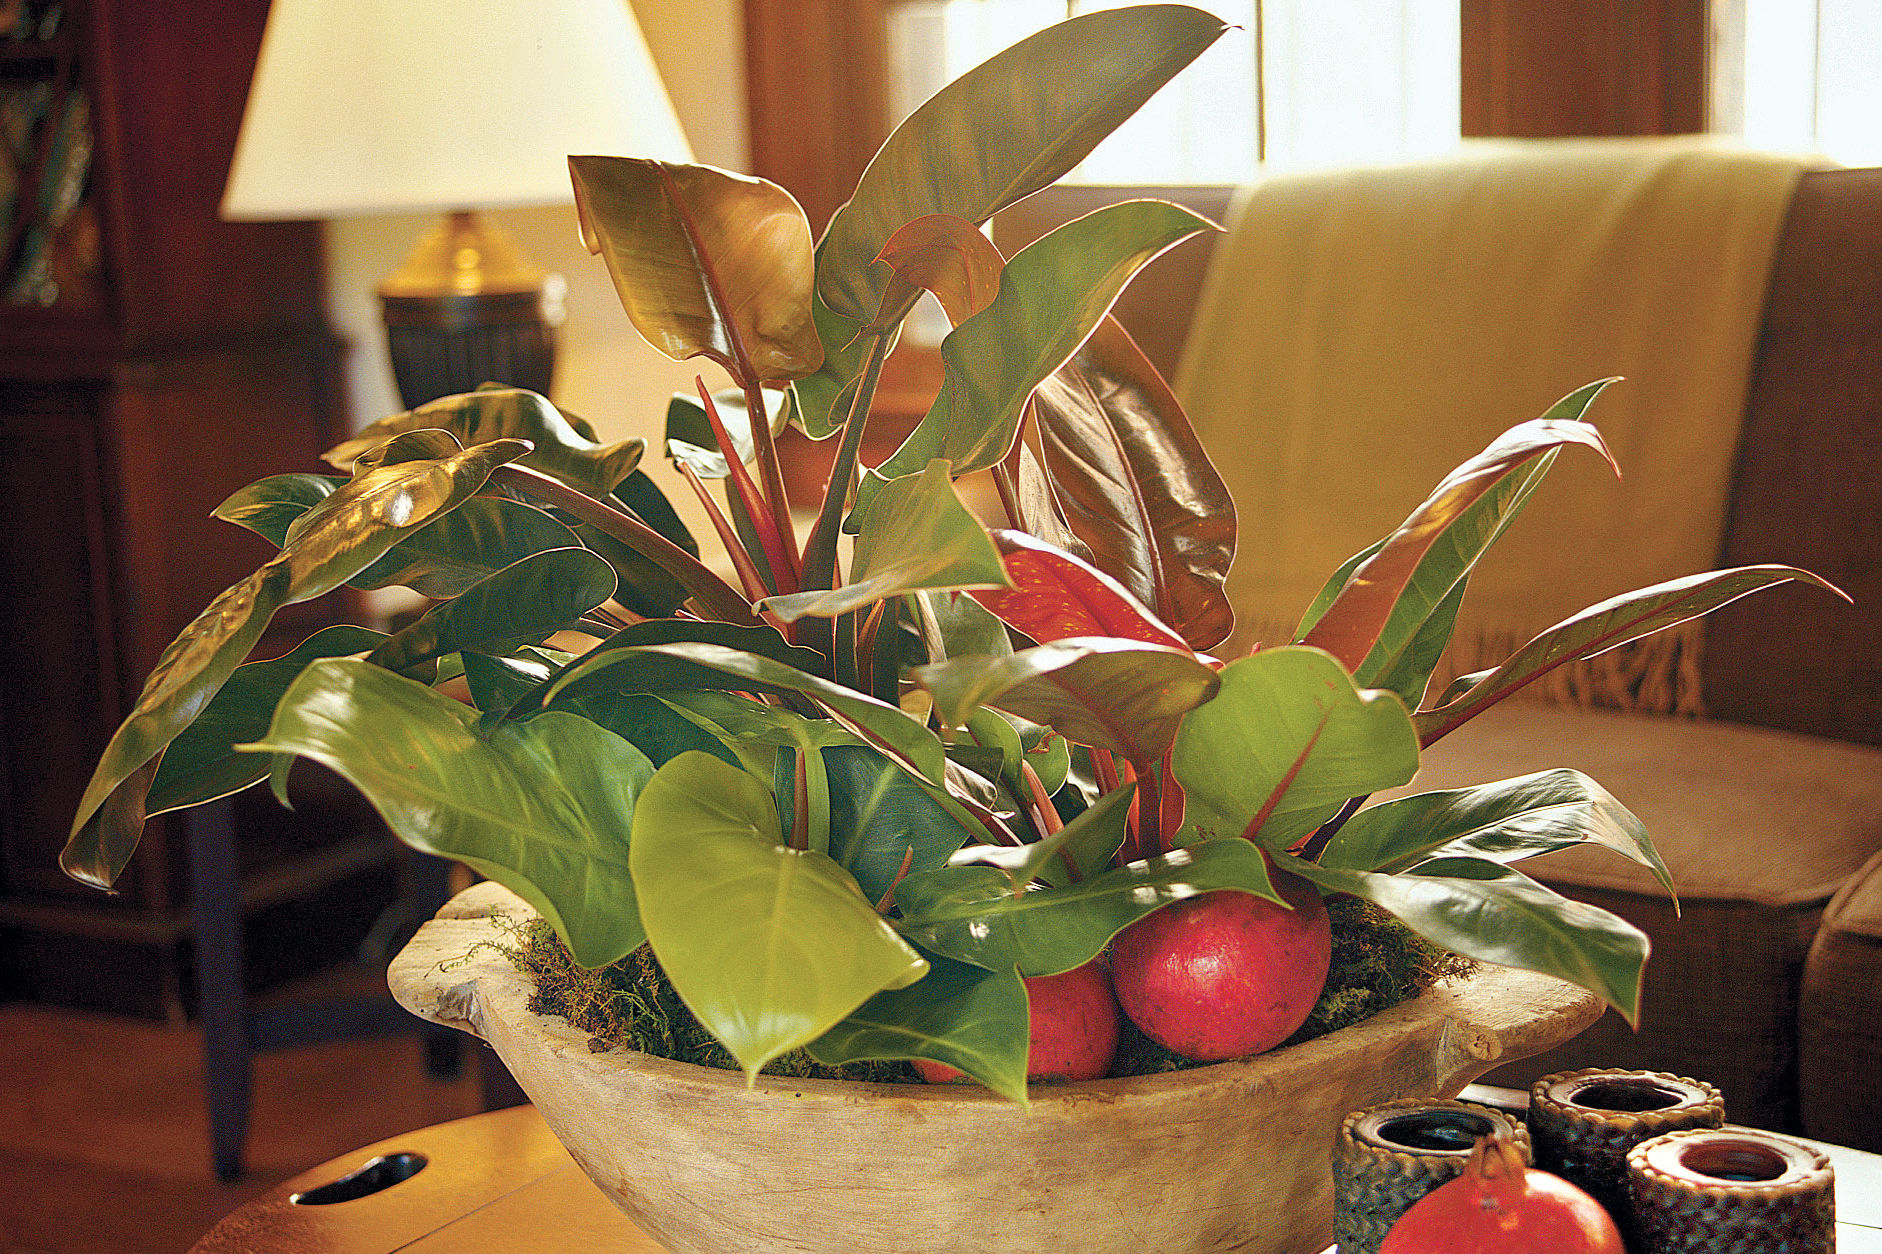 Display Houseplants With Autumn-Toned Foliage